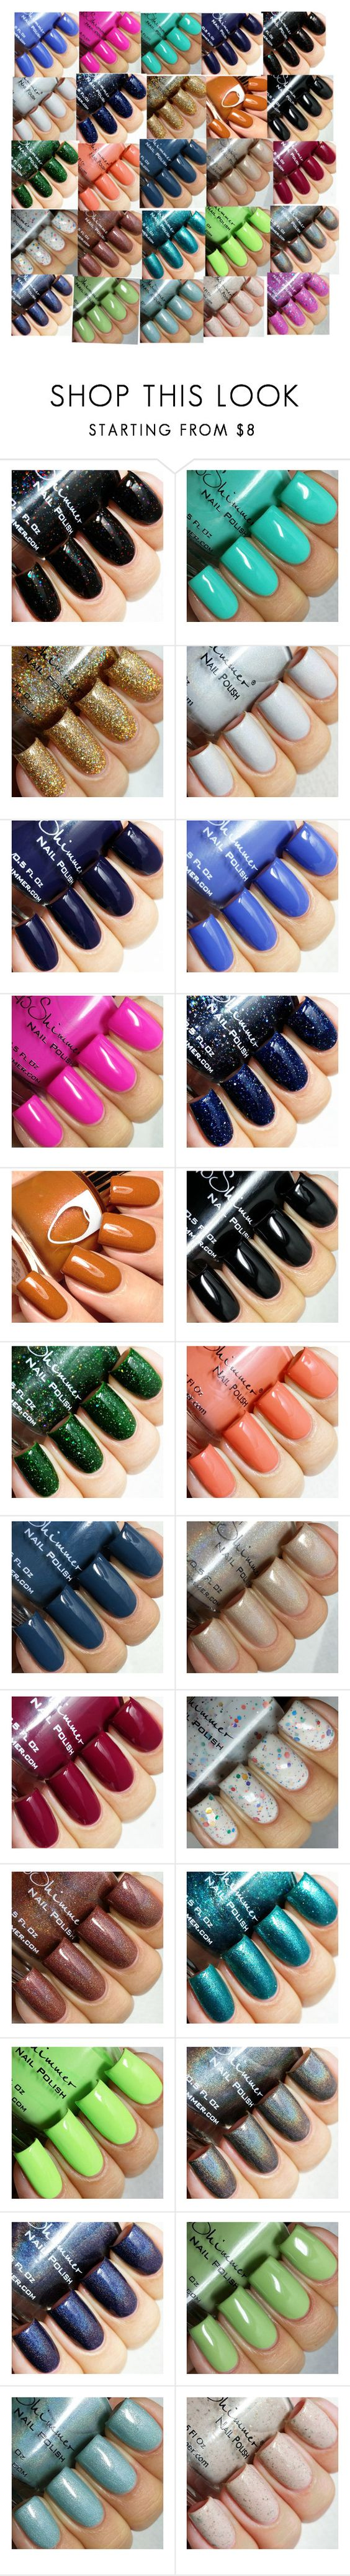 """""""Nail polishes(1)"""" by ikrakhan ❤ liked on Polyvore featuring beauty"""